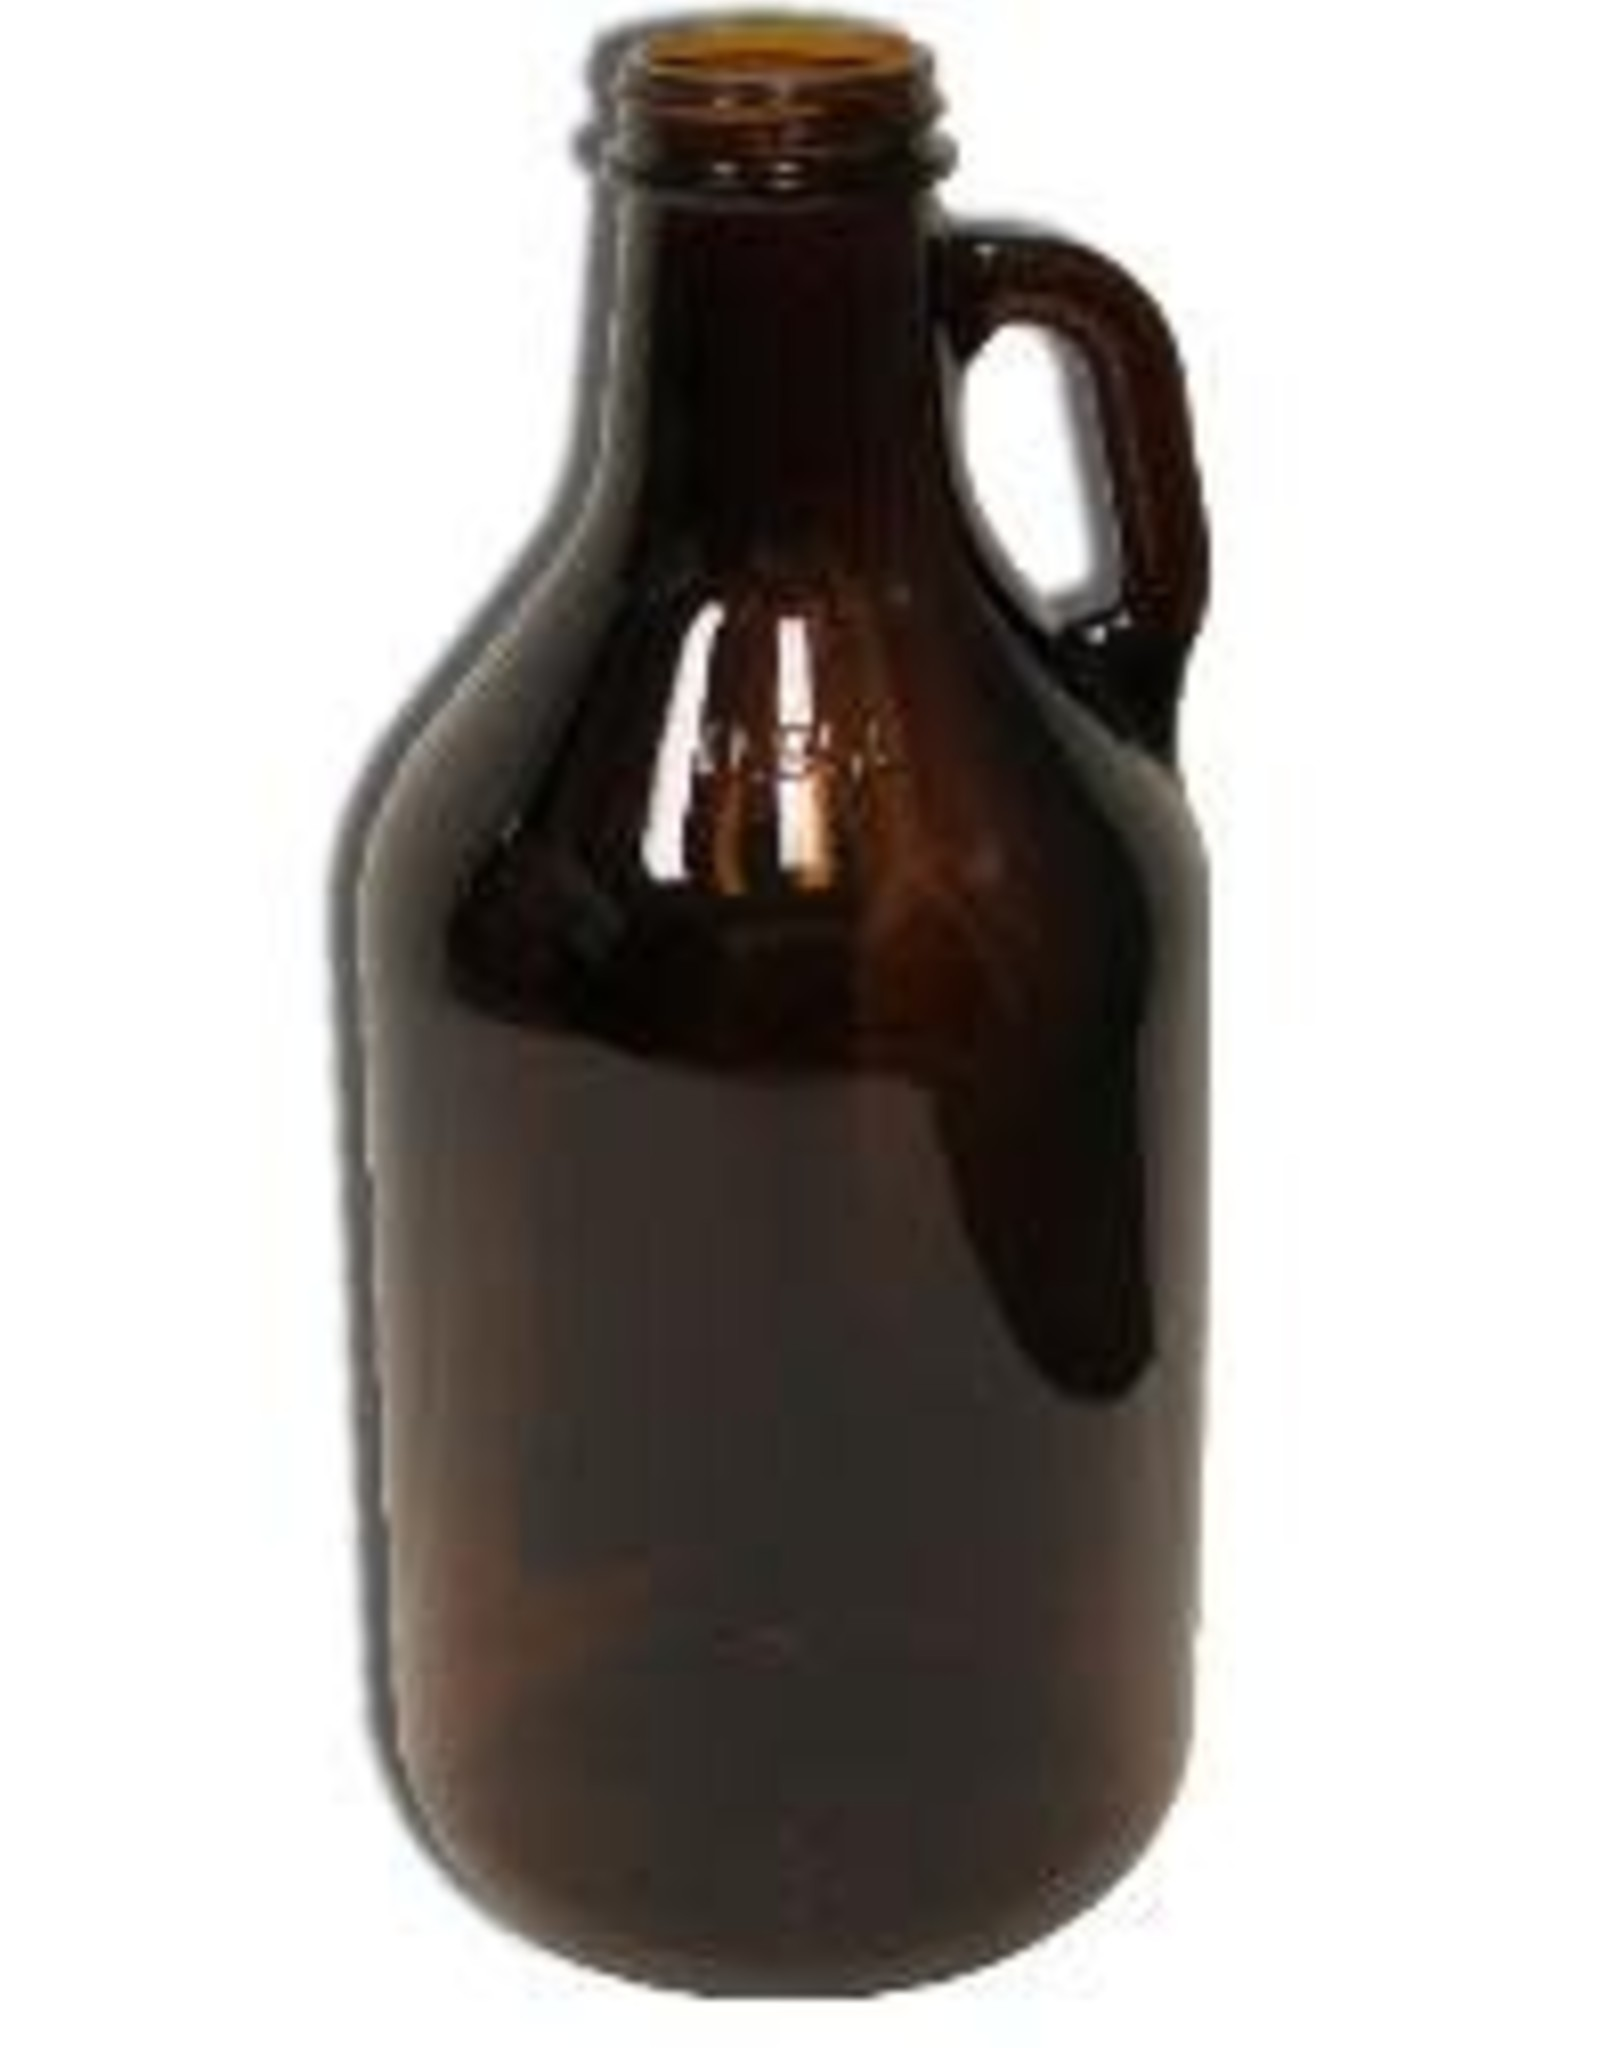 JUG- 1/4 GALLON GLASS AMBER